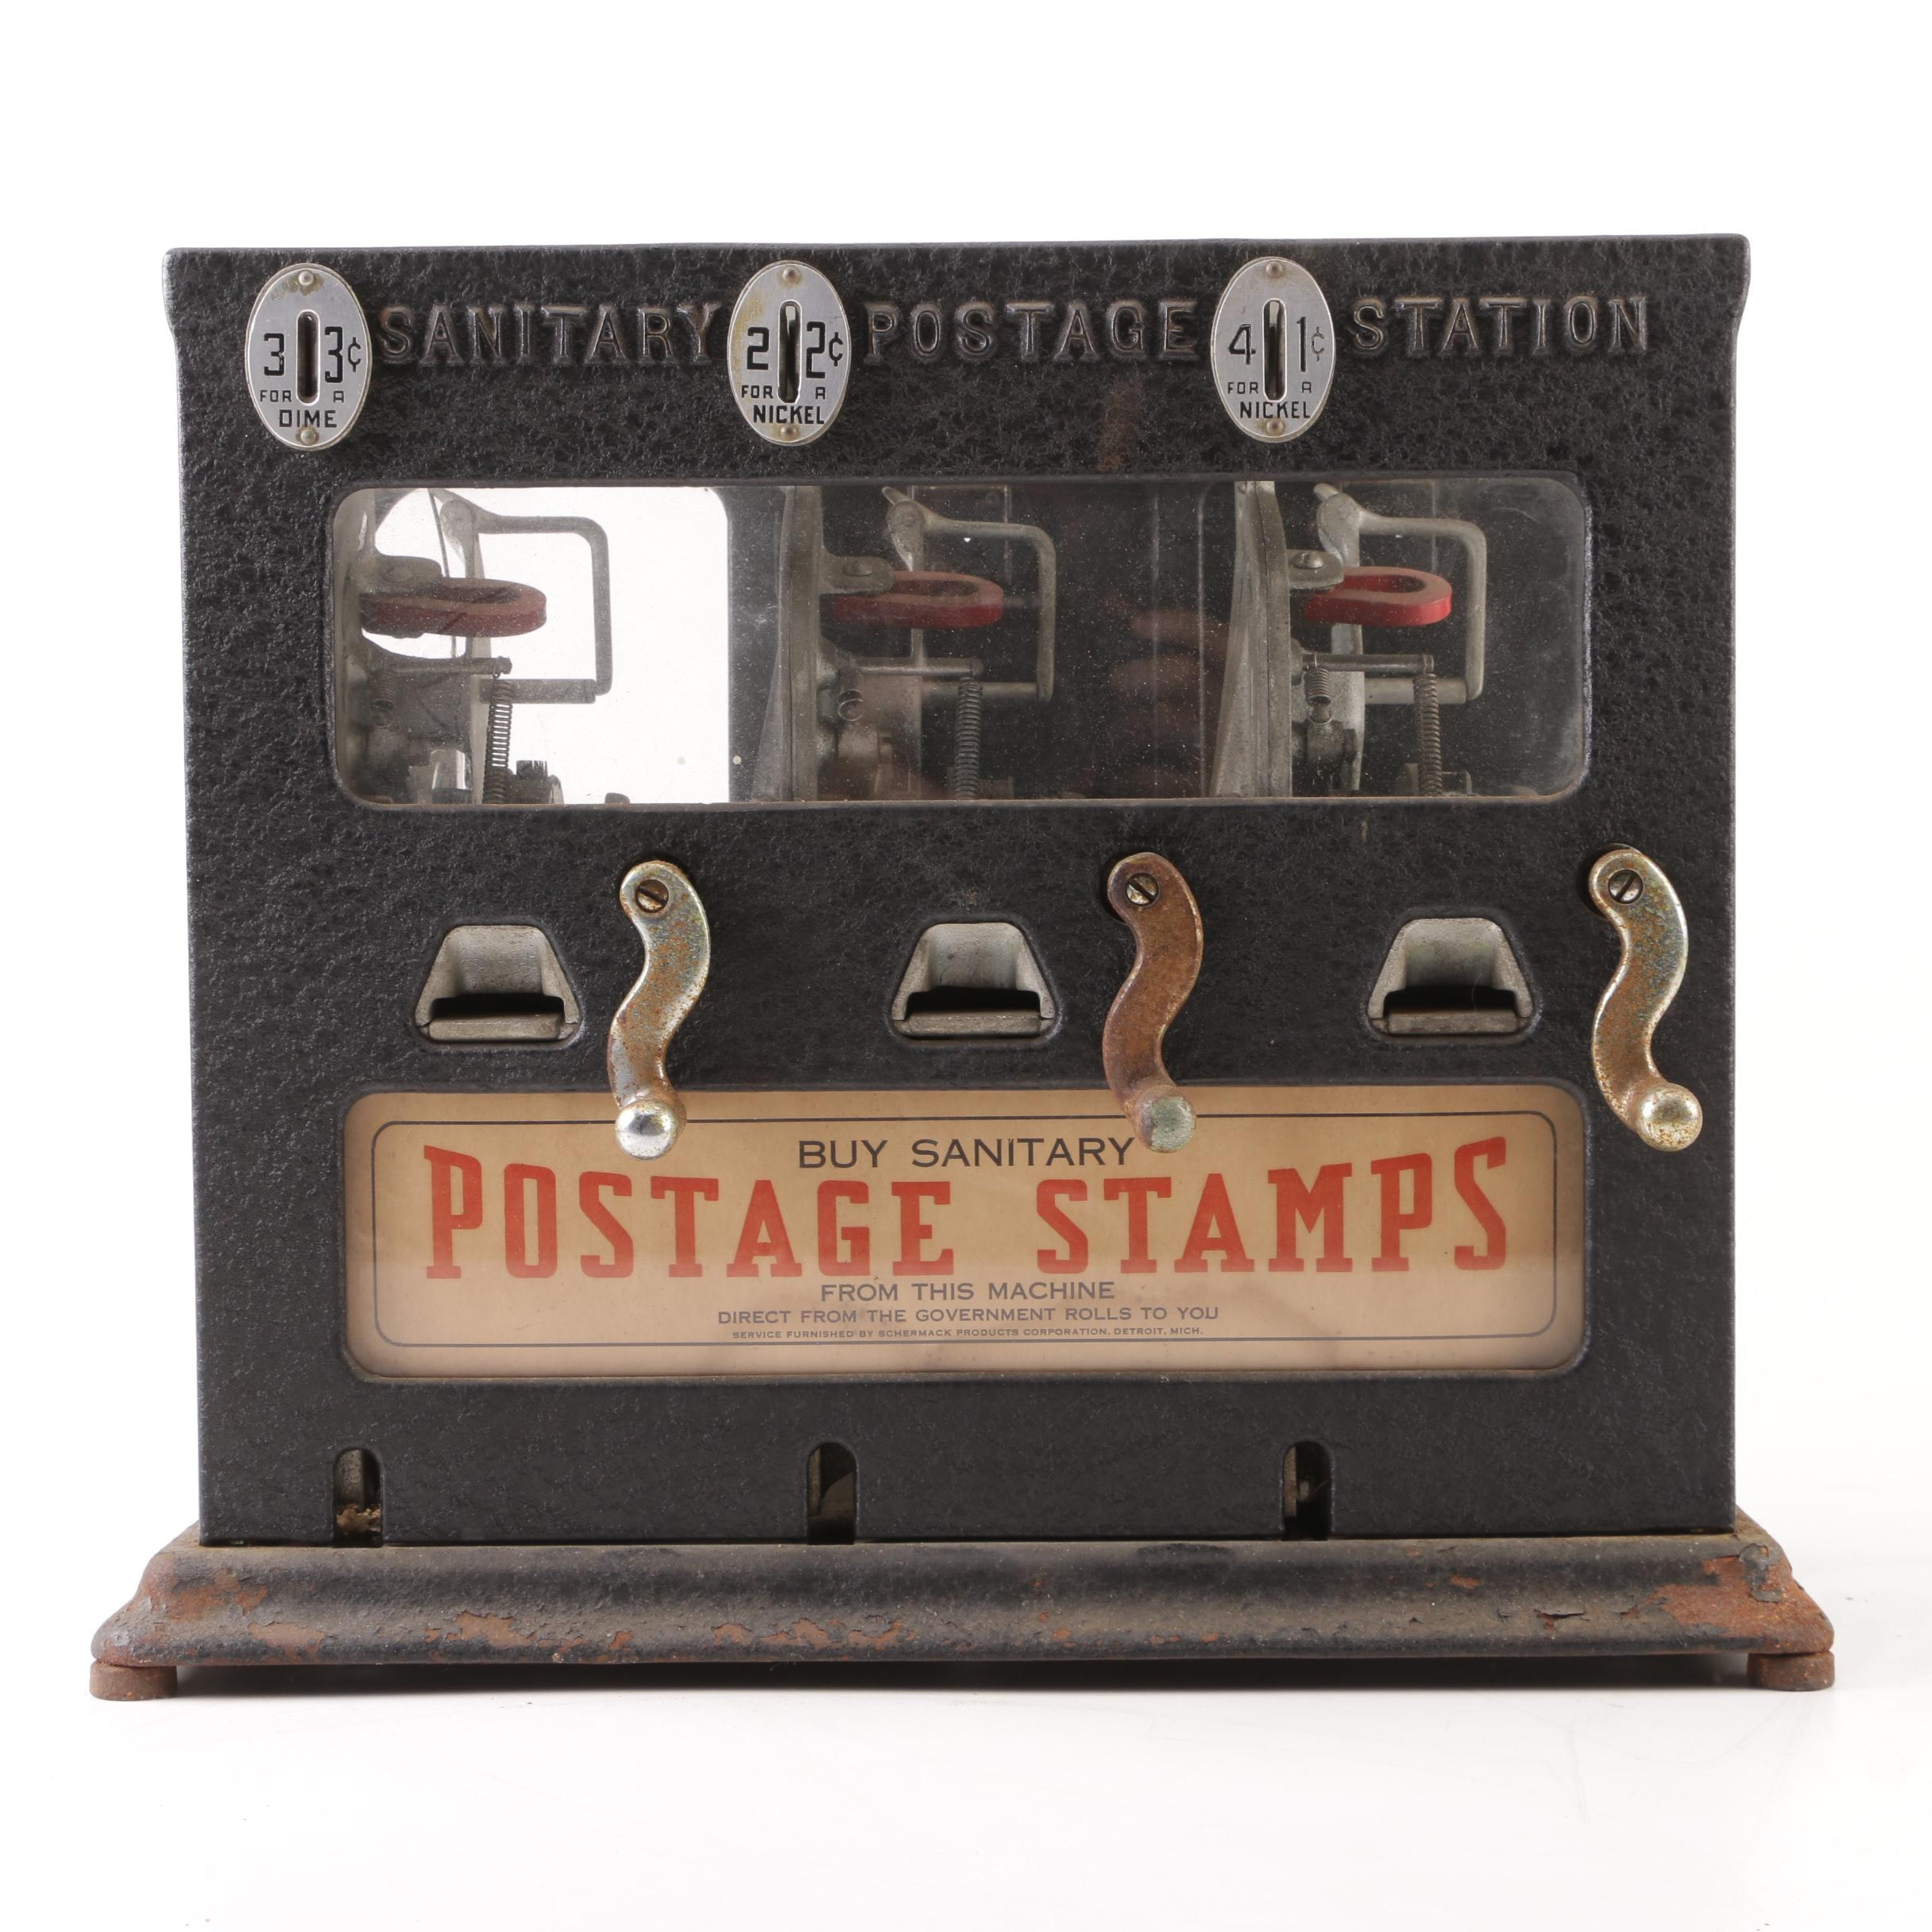 Schermack Products Sanitary Postage Station Stamp Dispenser, Early 20th Century